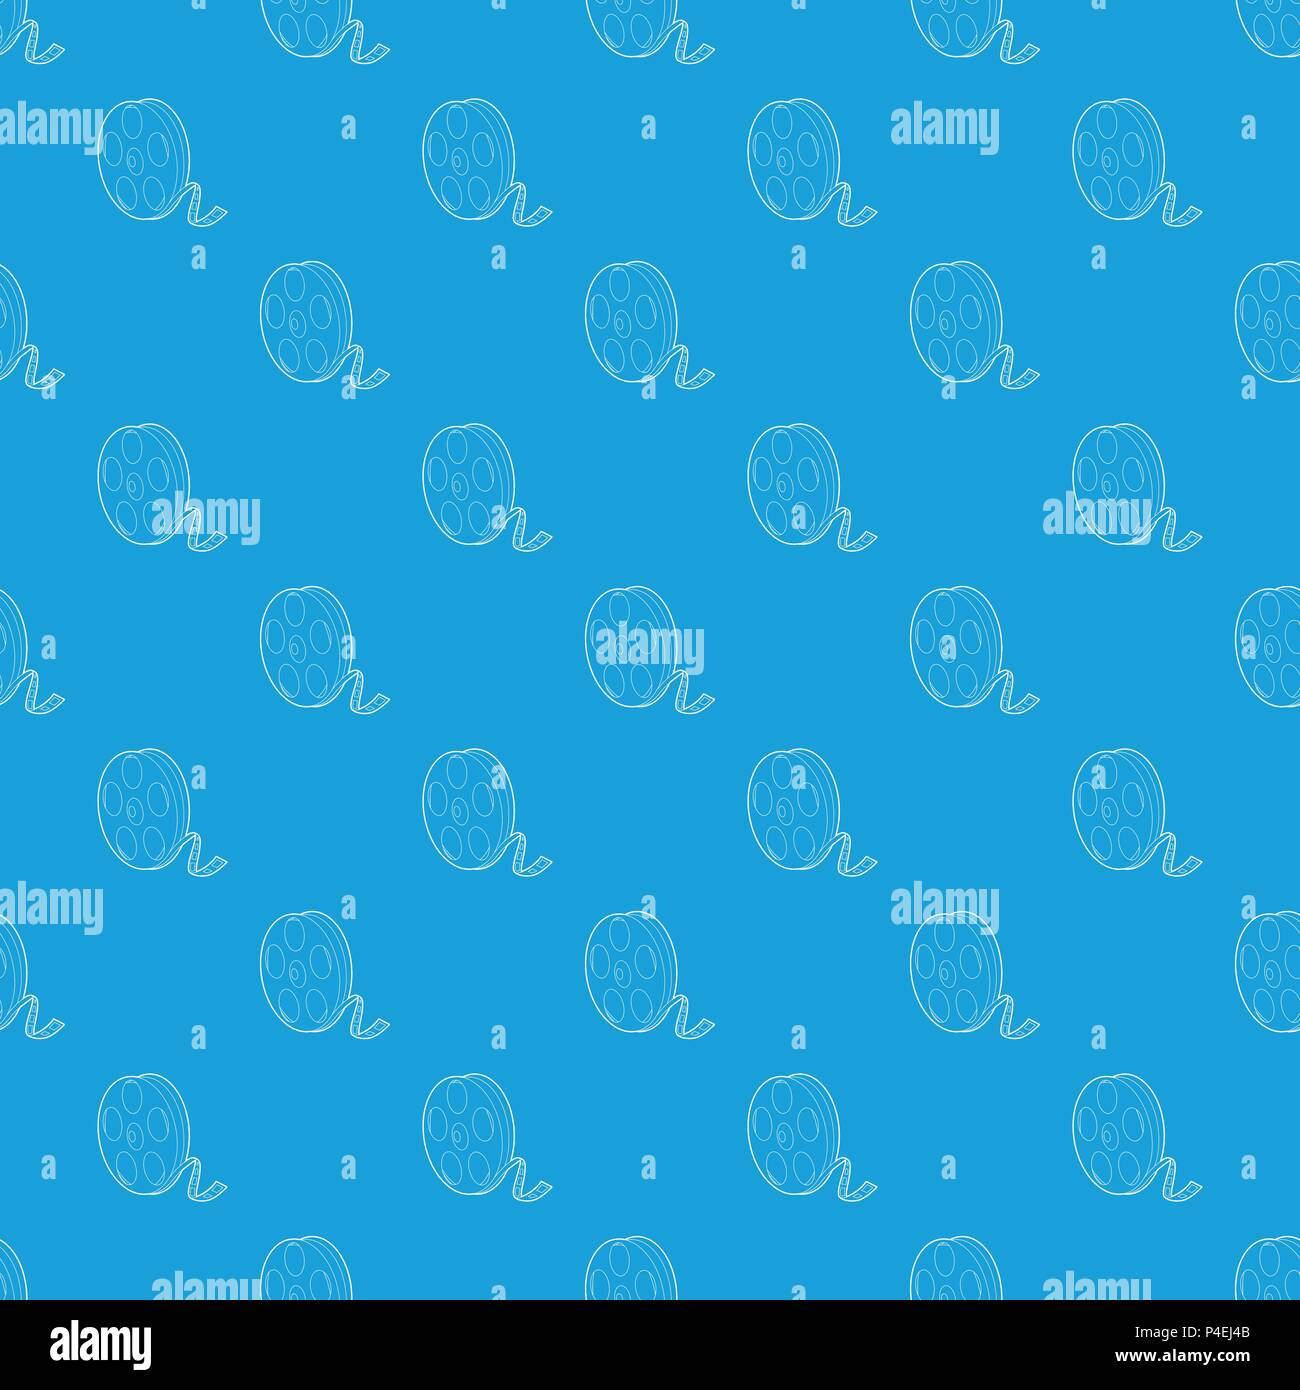 Reel pattern vector seamless blue - Stock Image